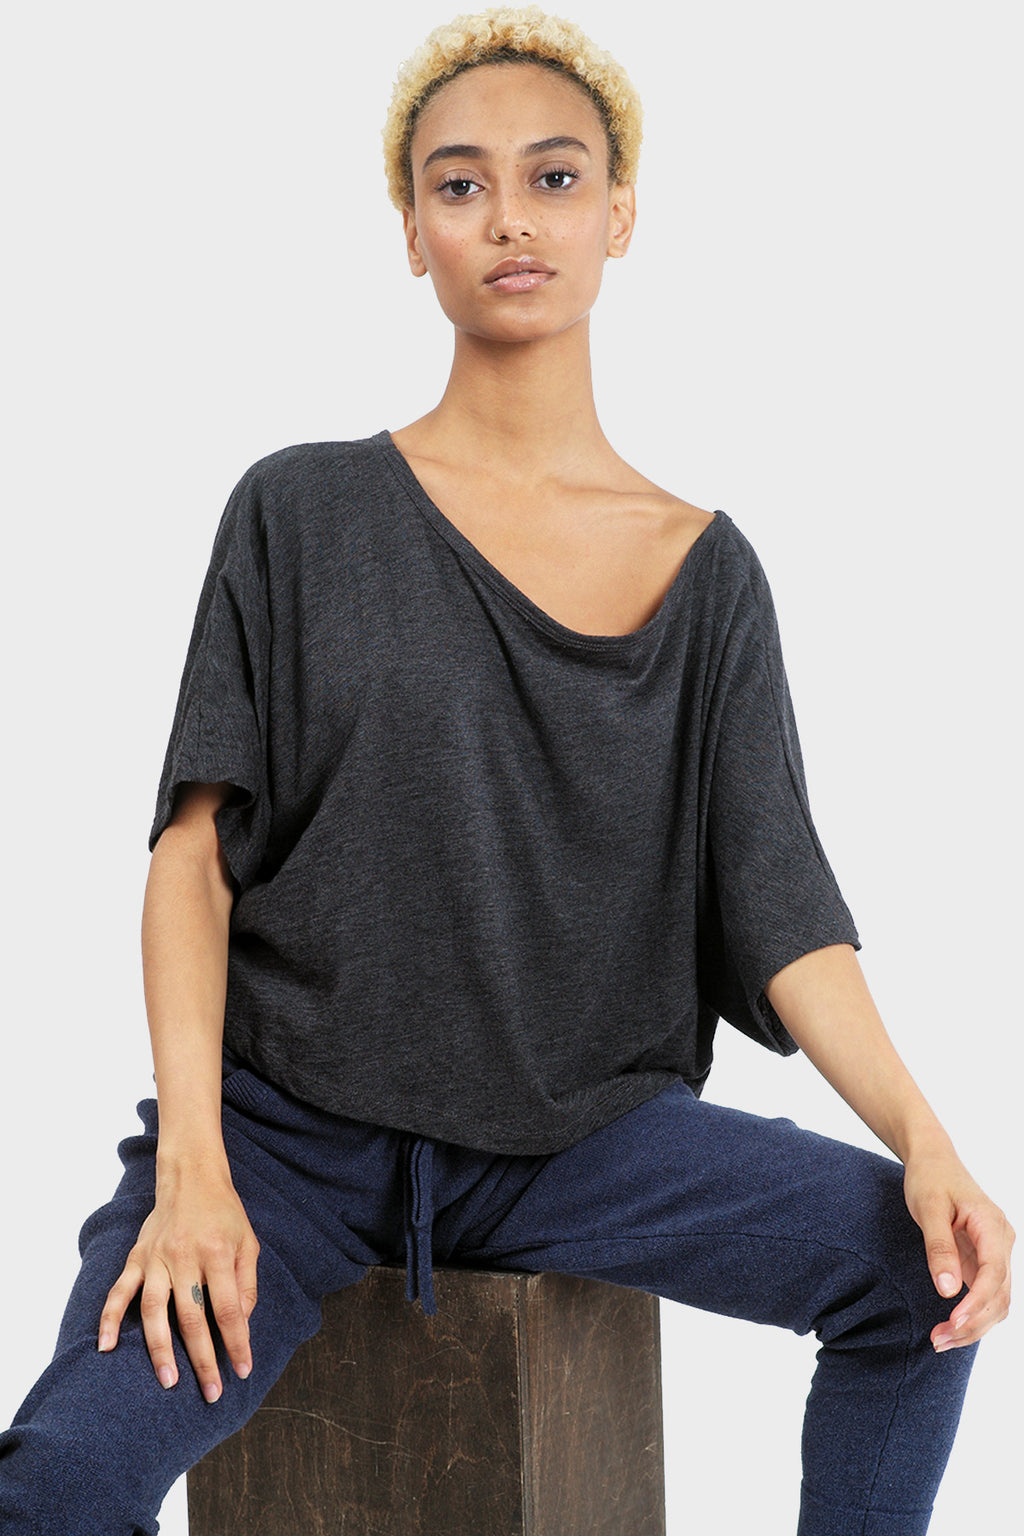 LUMI CROP TOP - 337 BRAND Women's Sustainable Clothing